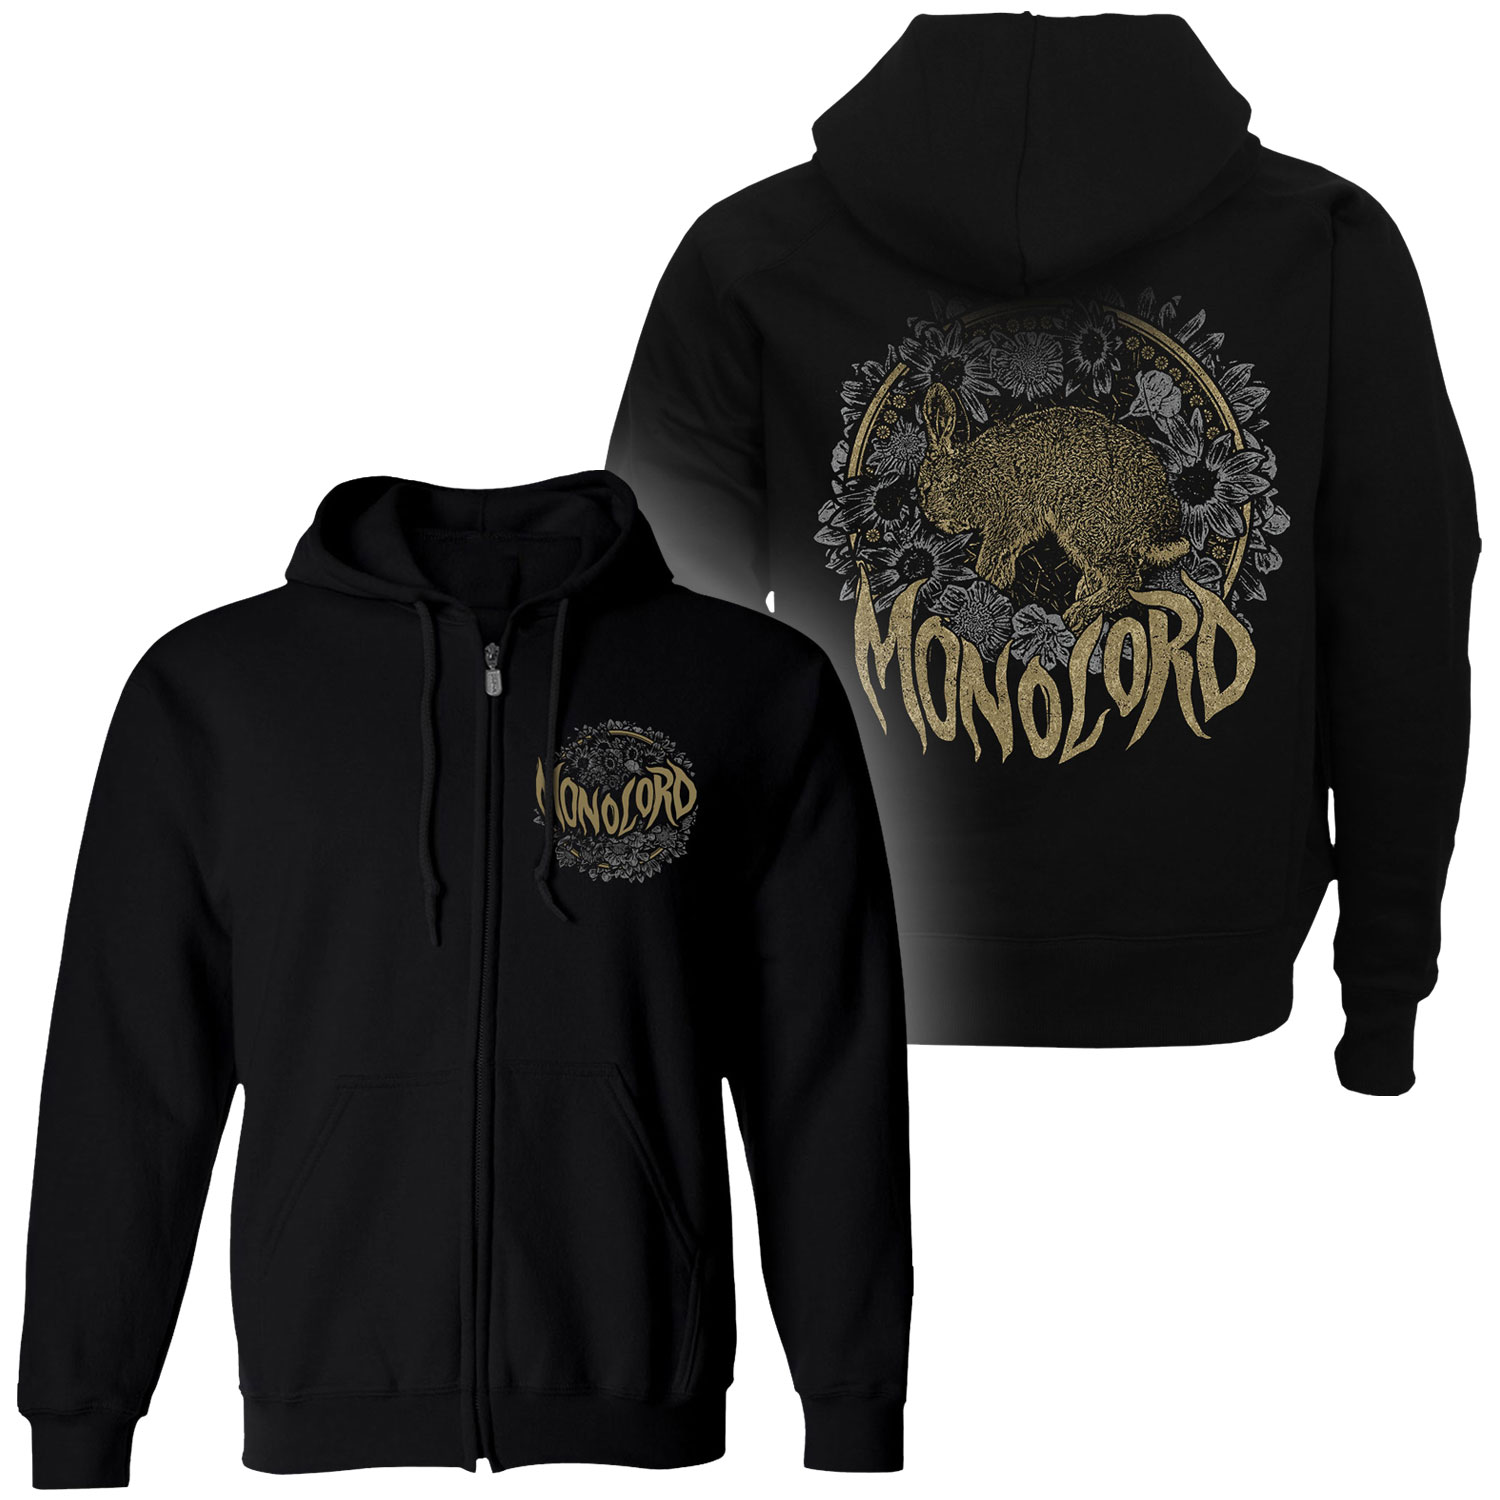 Your Time To Shine Zip Up Hoodie + CD Bundle